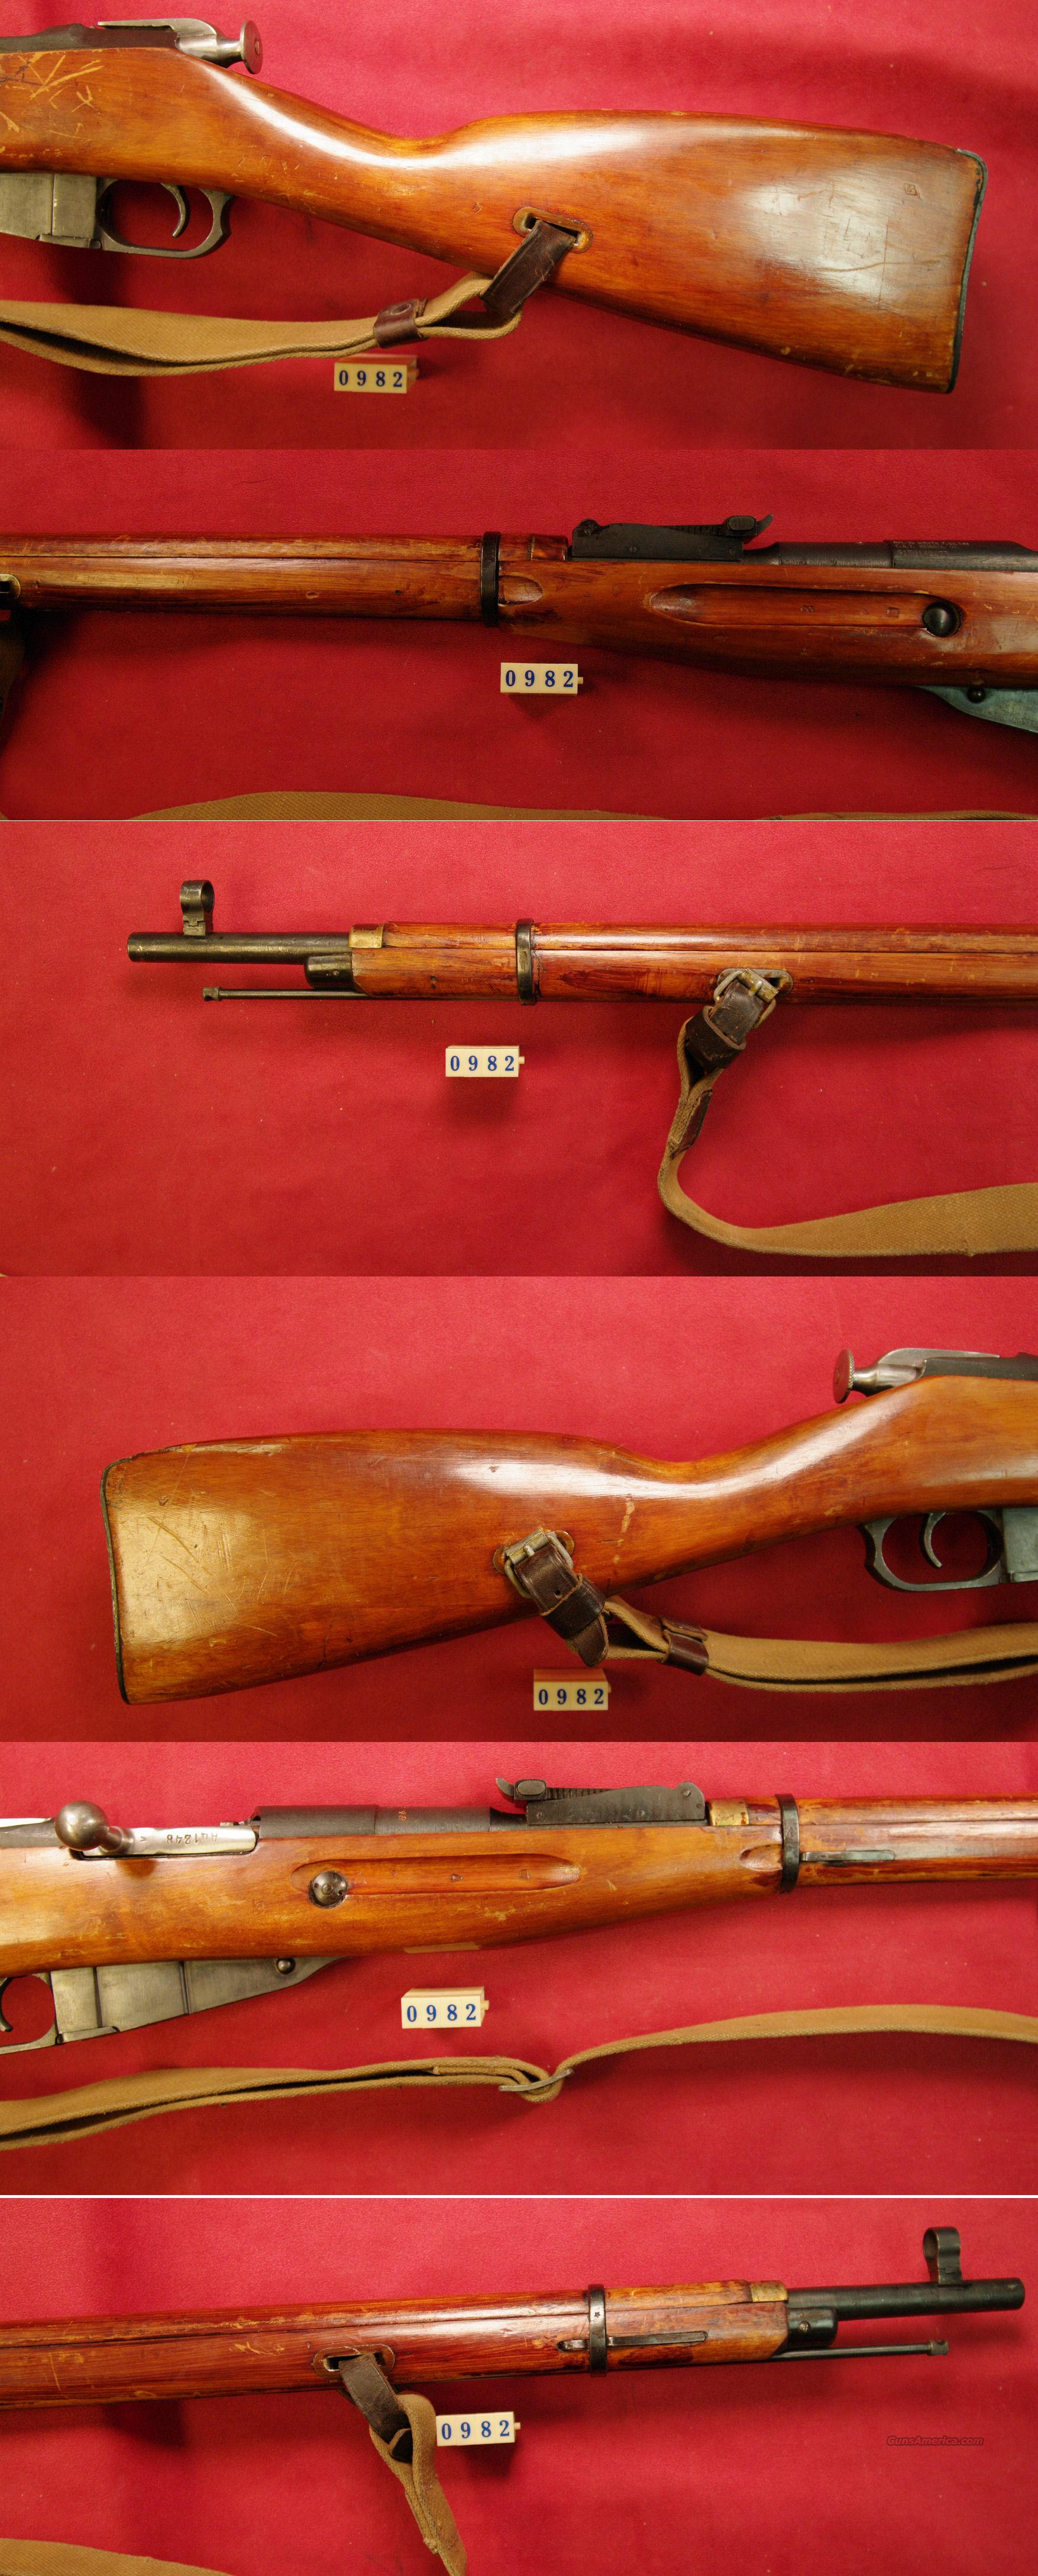 Mosin-Nagent M91/30 7.62x54R  Guns > Rifles > Mosin-Nagant Rifles/Carbines